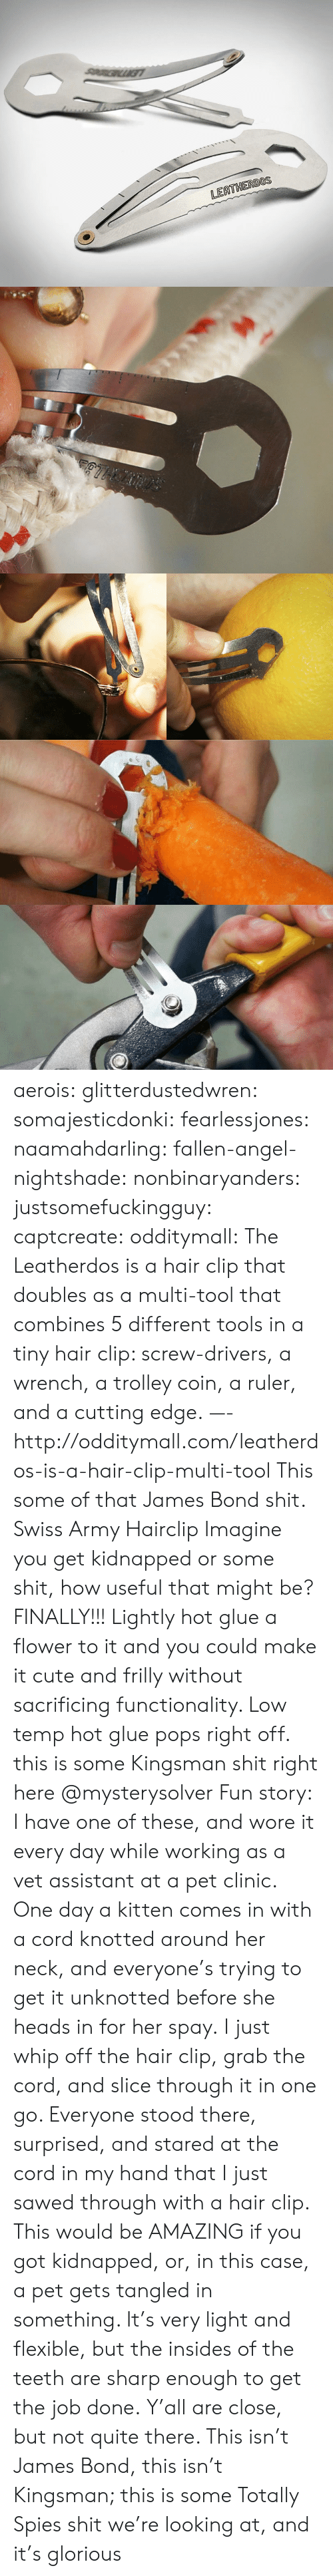 not quite: LEATHERDOS aerois:  glitterdustedwren:  somajesticdonki:  fearlessjones:  naamahdarling:  fallen-angel-nightshade:  nonbinaryanders:  justsomefuckingguy:  captcreate:  odditymall:  The Leatherdos is a hair clip that doubles as a multi-tool that combines 5 different tools in a tiny hair clip: screw-drivers, a wrench, a trolley coin, a ruler, and a cutting edge. —-http://odditymall.com/leatherdos-is-a-hair-clip-multi-tool  This some of that James Bond shit.  Swiss Army Hairclip  Imagine you get kidnapped or some shit, how useful that might be?  FINALLY!!!   Lightly hot glue a flower to it and you could make it cute and frilly without sacrificing functionality. Low temp hot glue pops right off.   this is some Kingsman shit right here   @mysterysolver  Fun story: I have one of these, and wore it every day while working as a vet assistant at a pet clinic. One day a kitten comes in with a cord knotted around her neck, and everyone's trying to get it unknotted before she heads in for her spay. I just whip off the hair clip, grab the cord, and slice through it in one go. Everyone stood there, surprised, and stared at the cord in my hand that I just sawed through with a hair clip.  This would be AMAZING if you got kidnapped, or, in this case, a pet gets tangled in something. It's very light and flexible, but the insides of the teeth are sharp enough to get the job done.  Y'all are close, but not quite there. This isn't James Bond, this isn't Kingsman; this is some Totally Spies shit we're looking at, and it's glorious